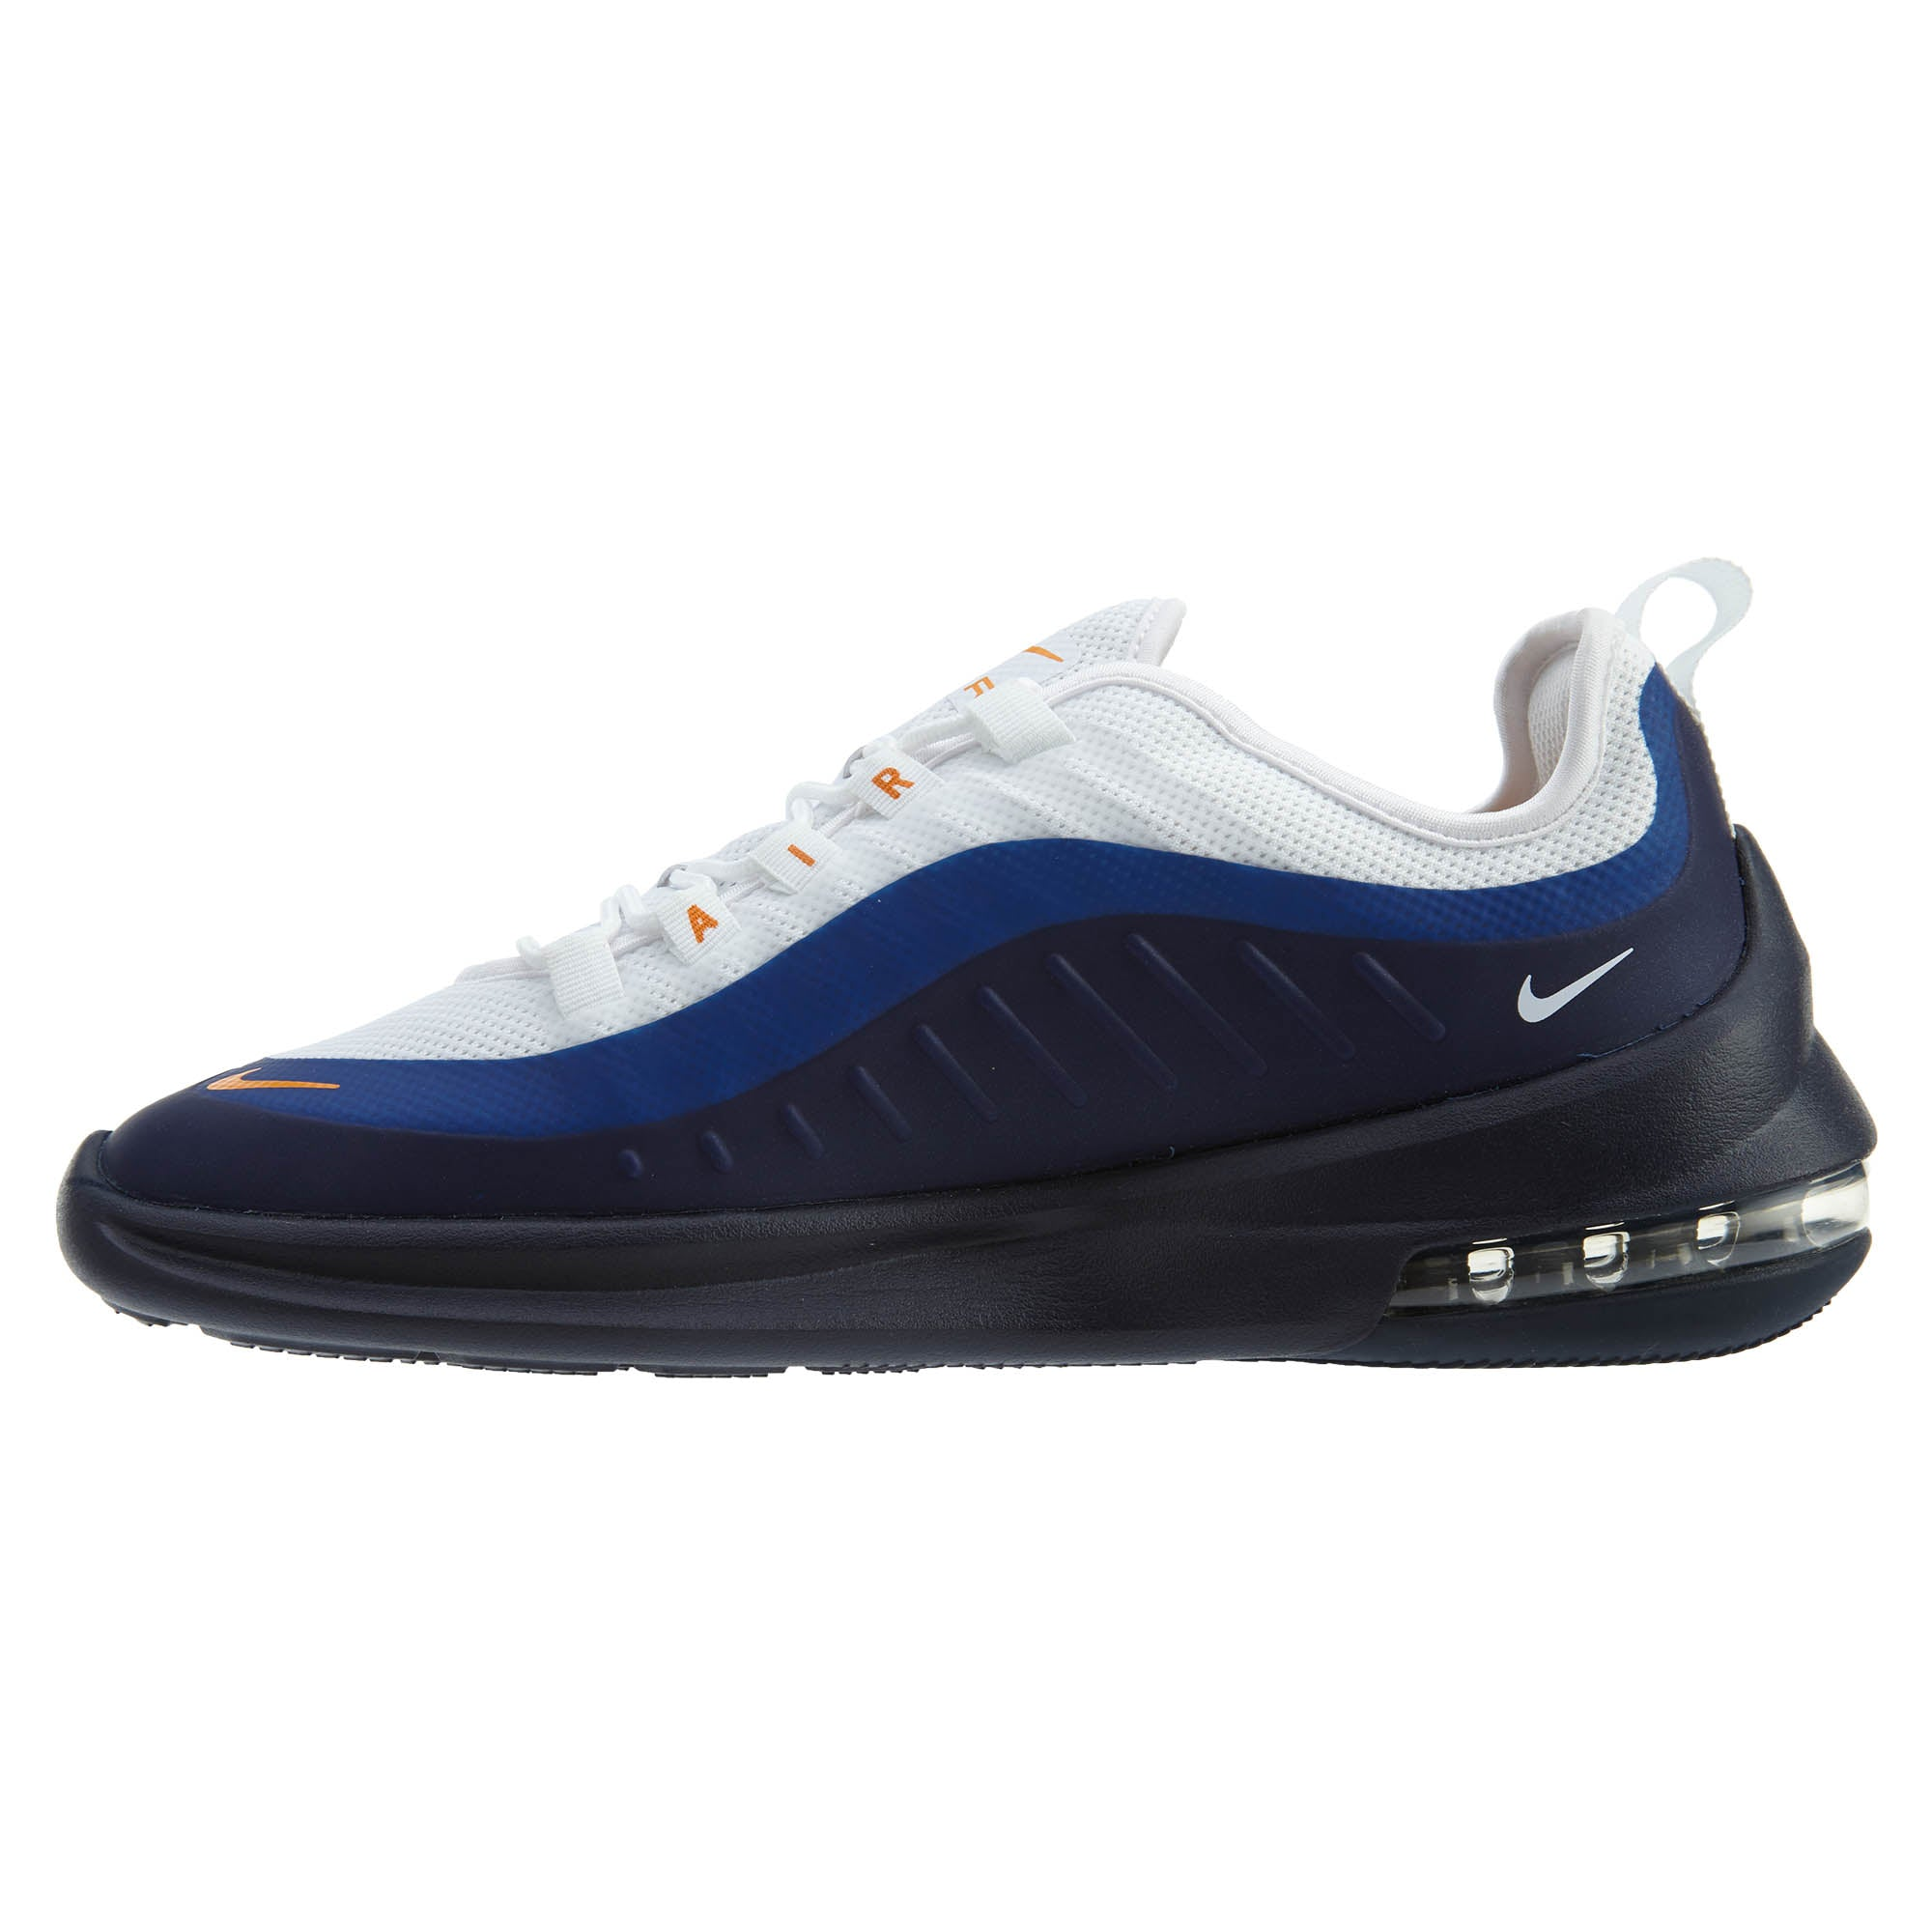 19a0ef91f89 Nike Air Max Axis Mens Style   Aa2146-106